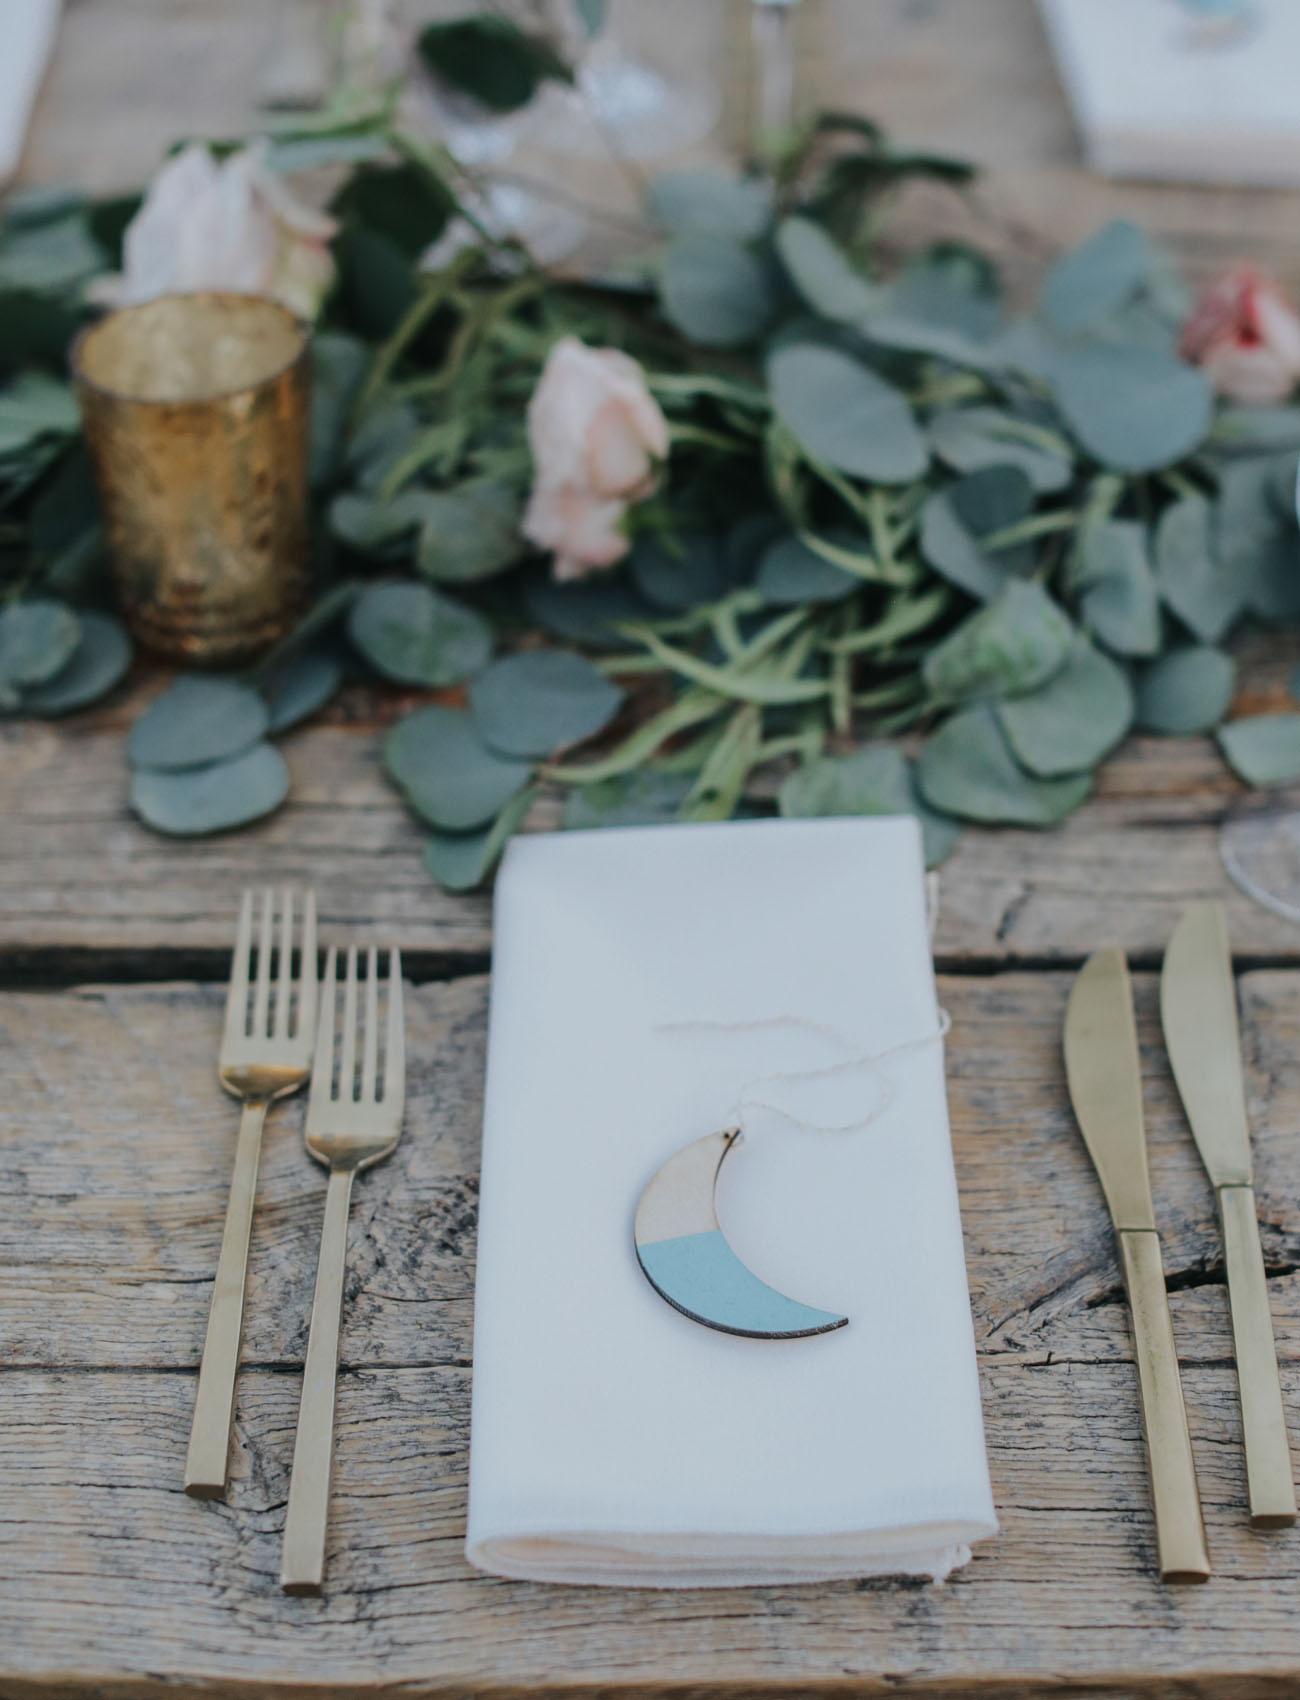 Moon charms by The Great Lakes Goods